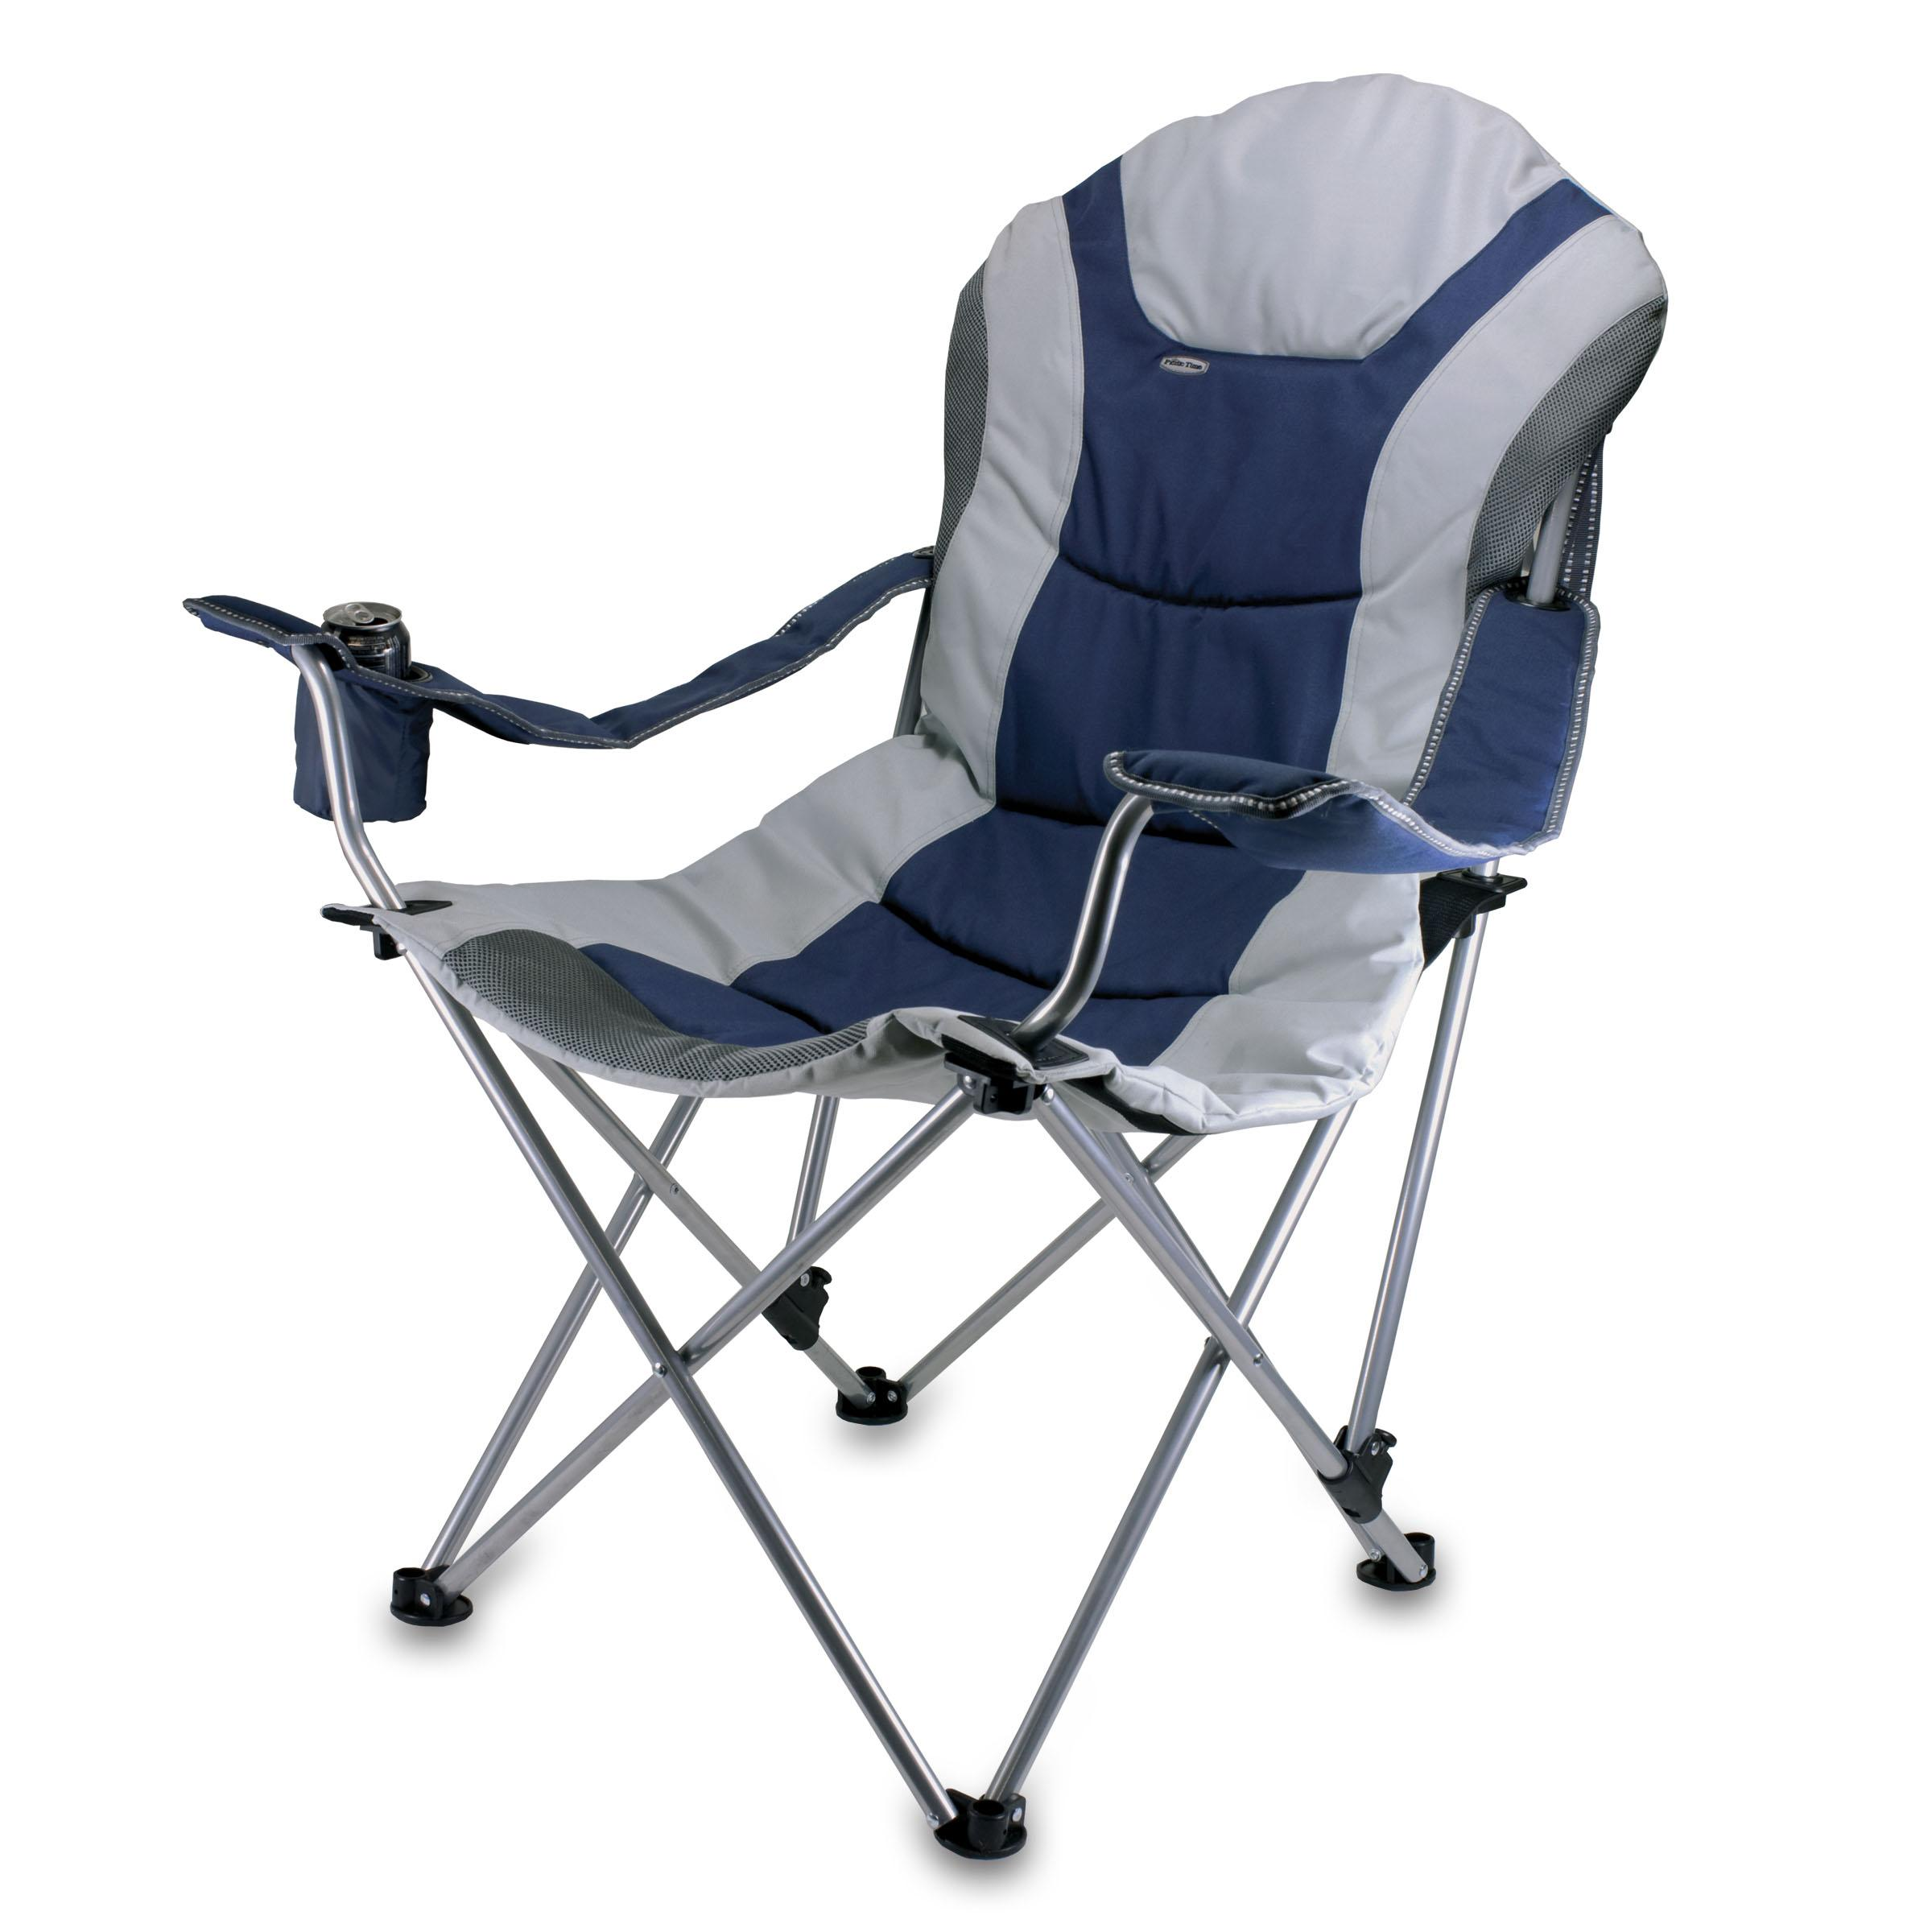 top chair chairs and home furniture concept for comfort photo relaxation folding beautiful camping ultimate